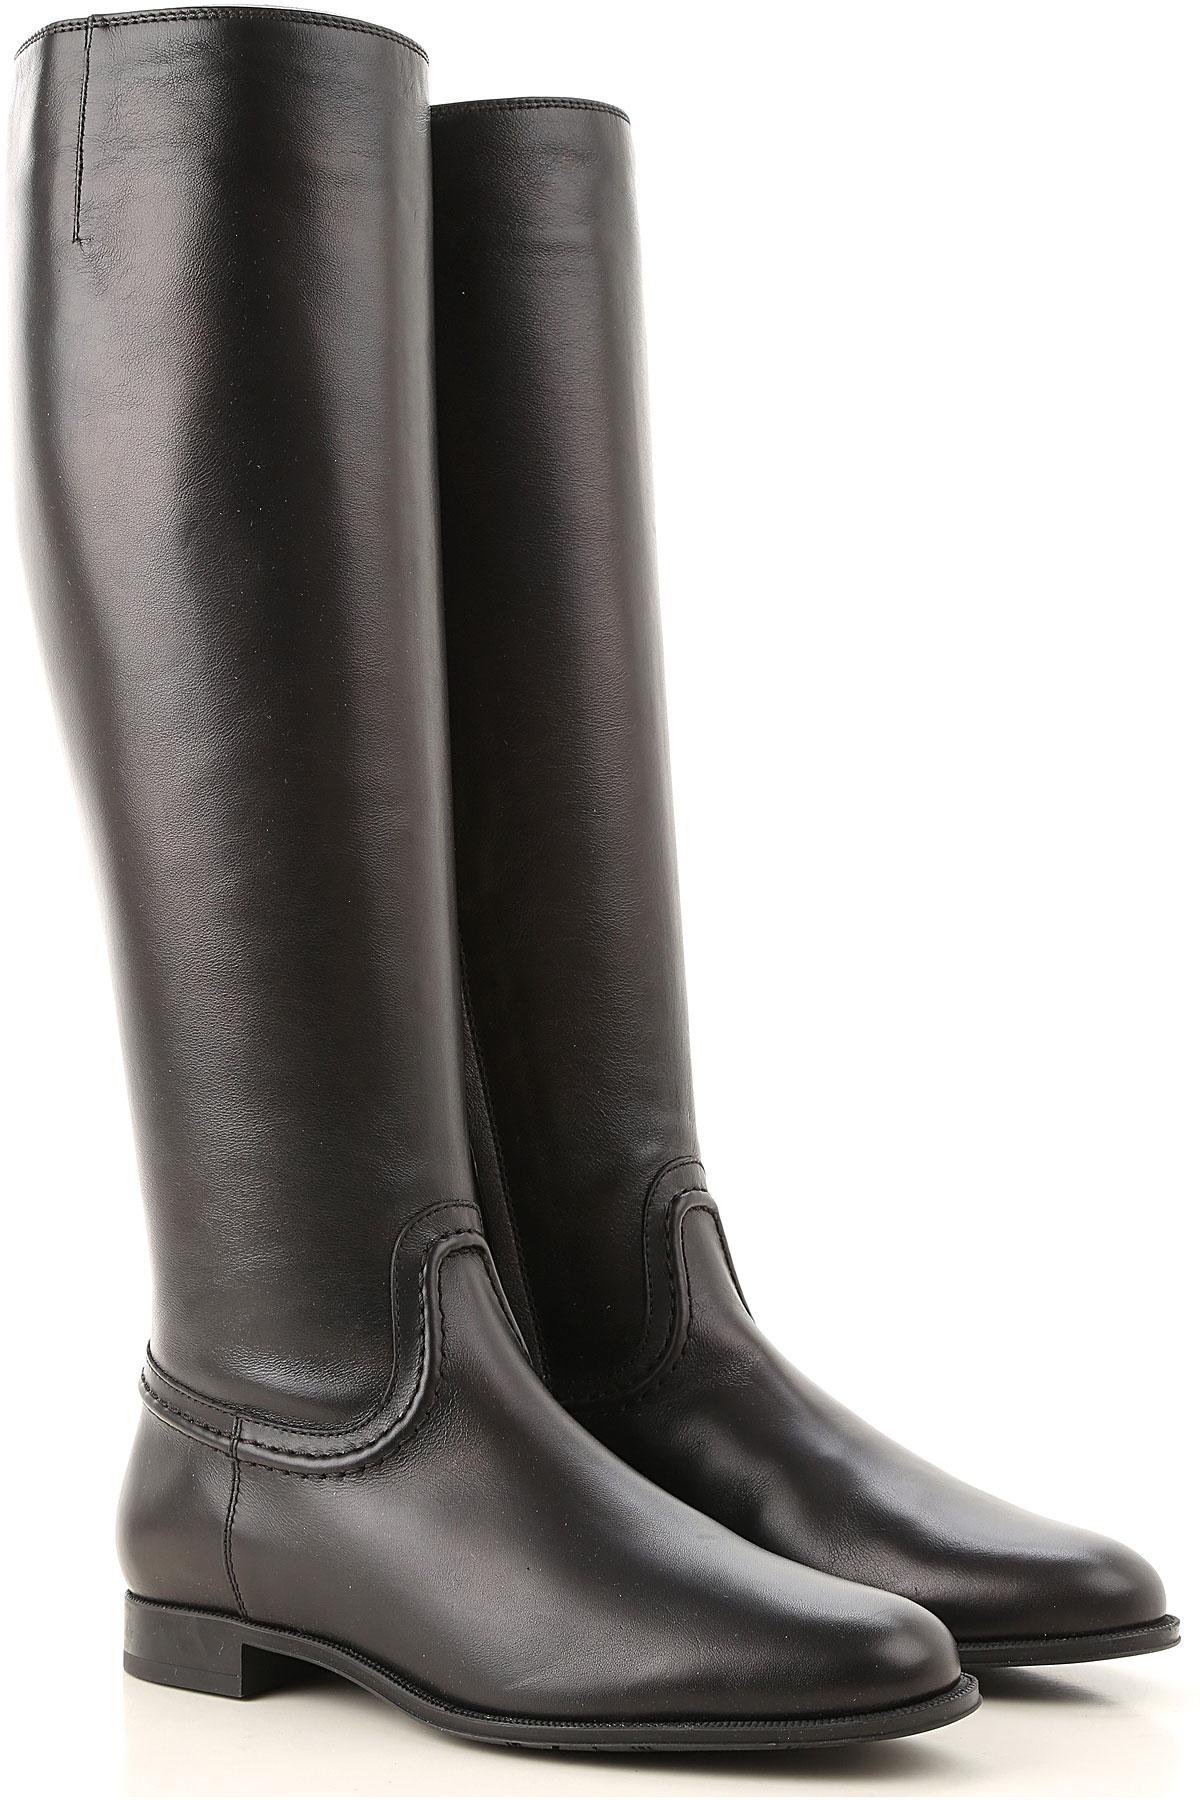 Tods Boots for Women, Booties On Sale, Black, Leather, 2019, 11 5 8 8.5 9